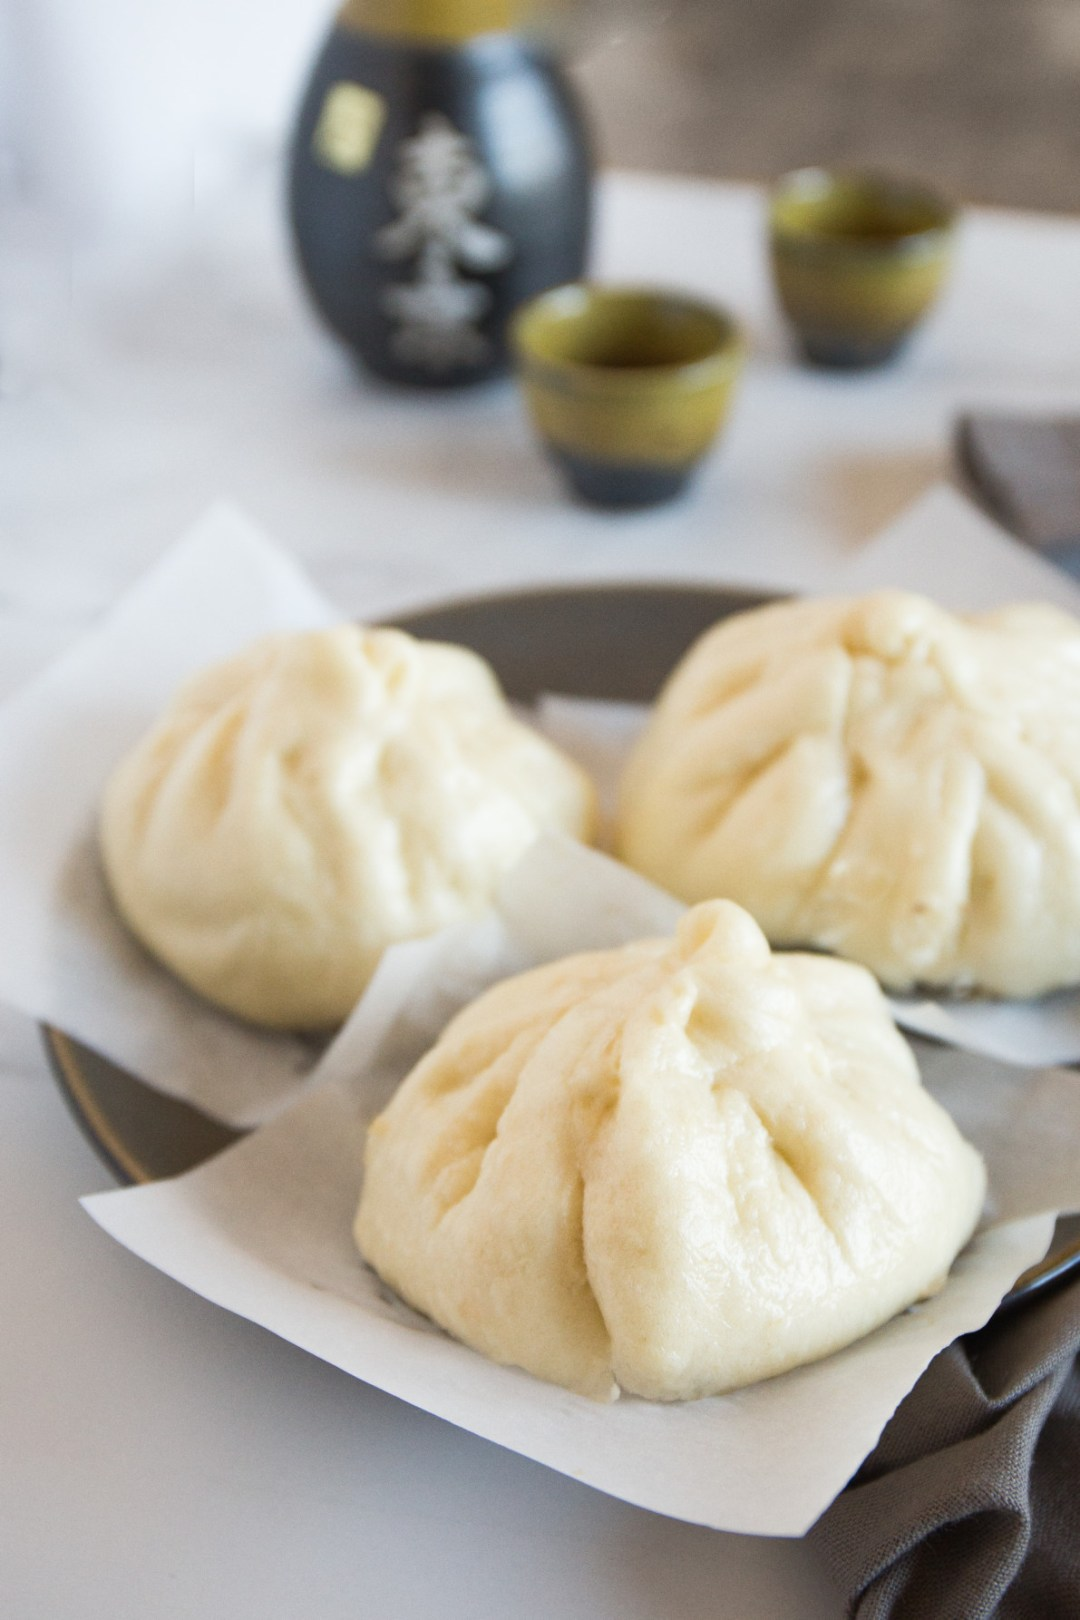 Steamed Japanese Beef Buns are soft, fluffy buns filled with a satisfying combination of meat and vegetables. So easy and delicious! | wanderzestblog.com